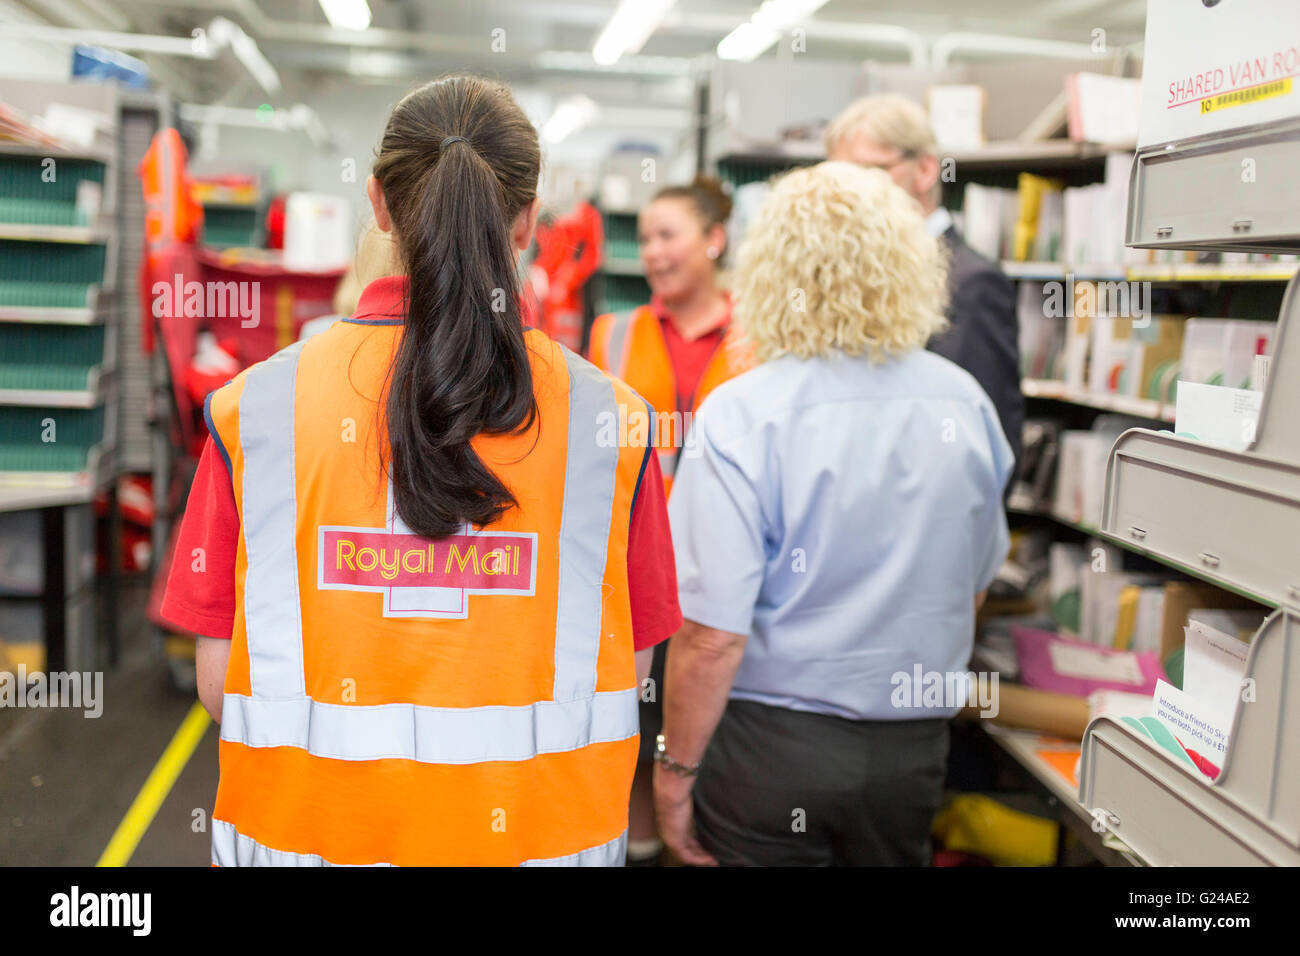 Royal Mail Sorting Office. A woman at work - Stock Image